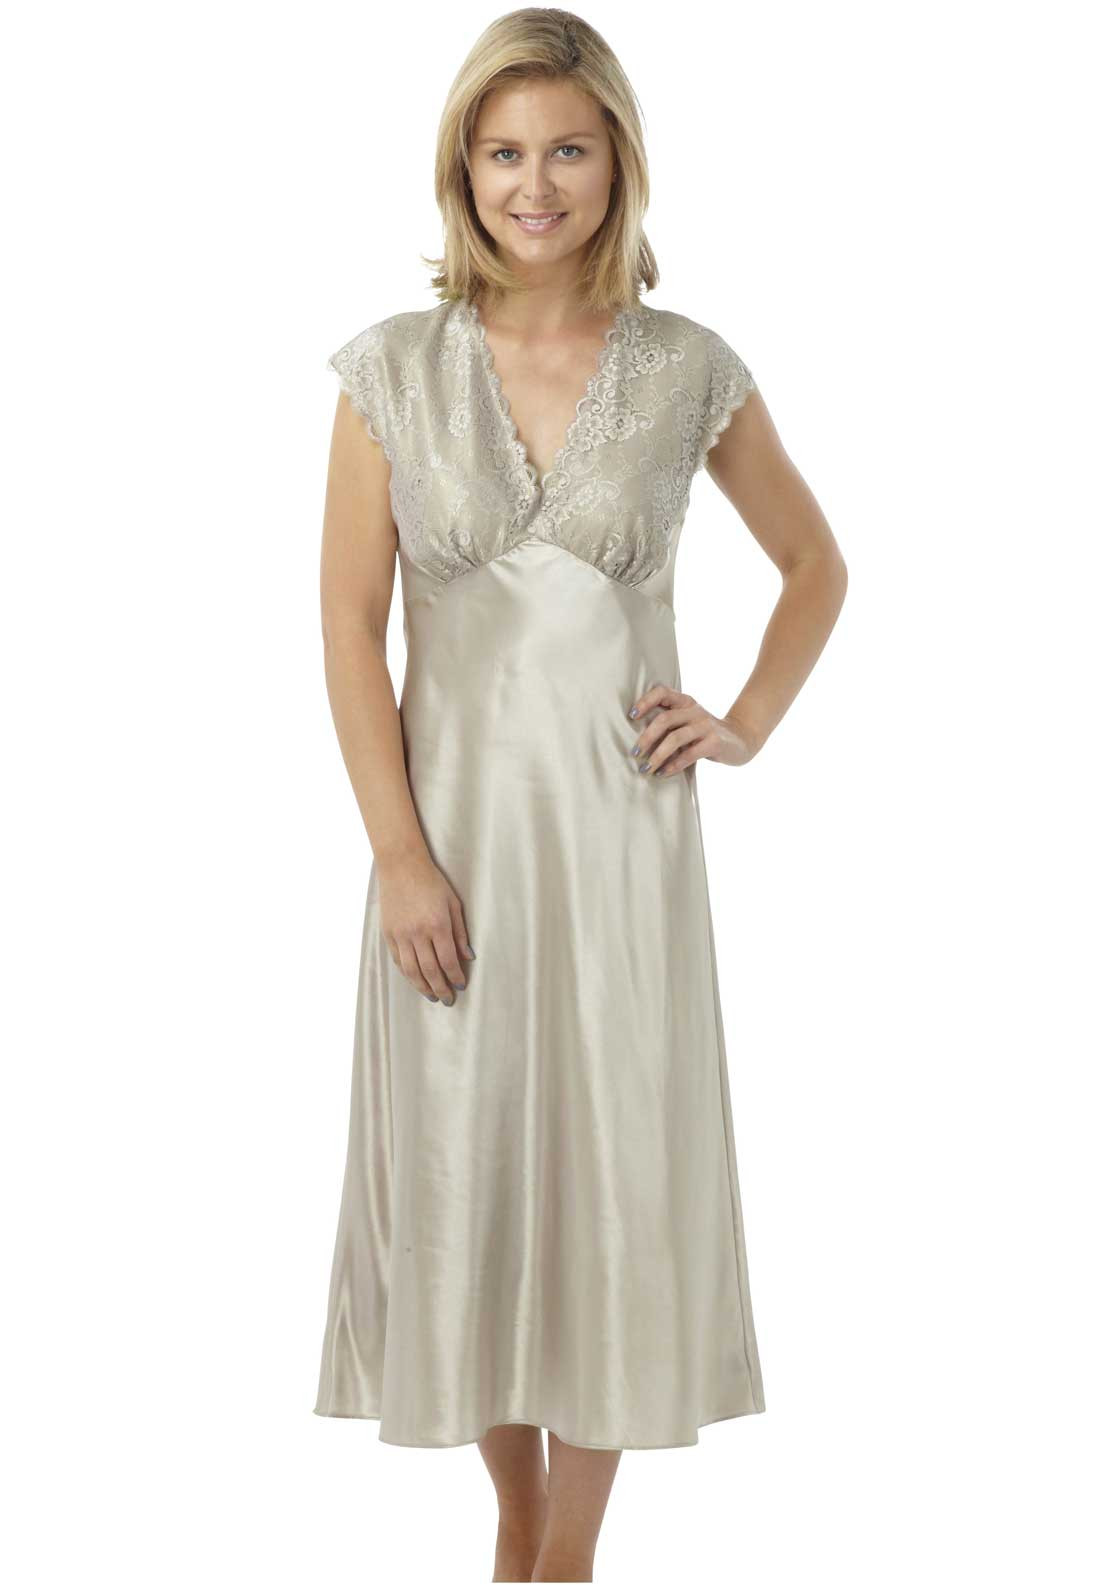 Indigo Sky Lace Trim Satin Nightdress, Mocha